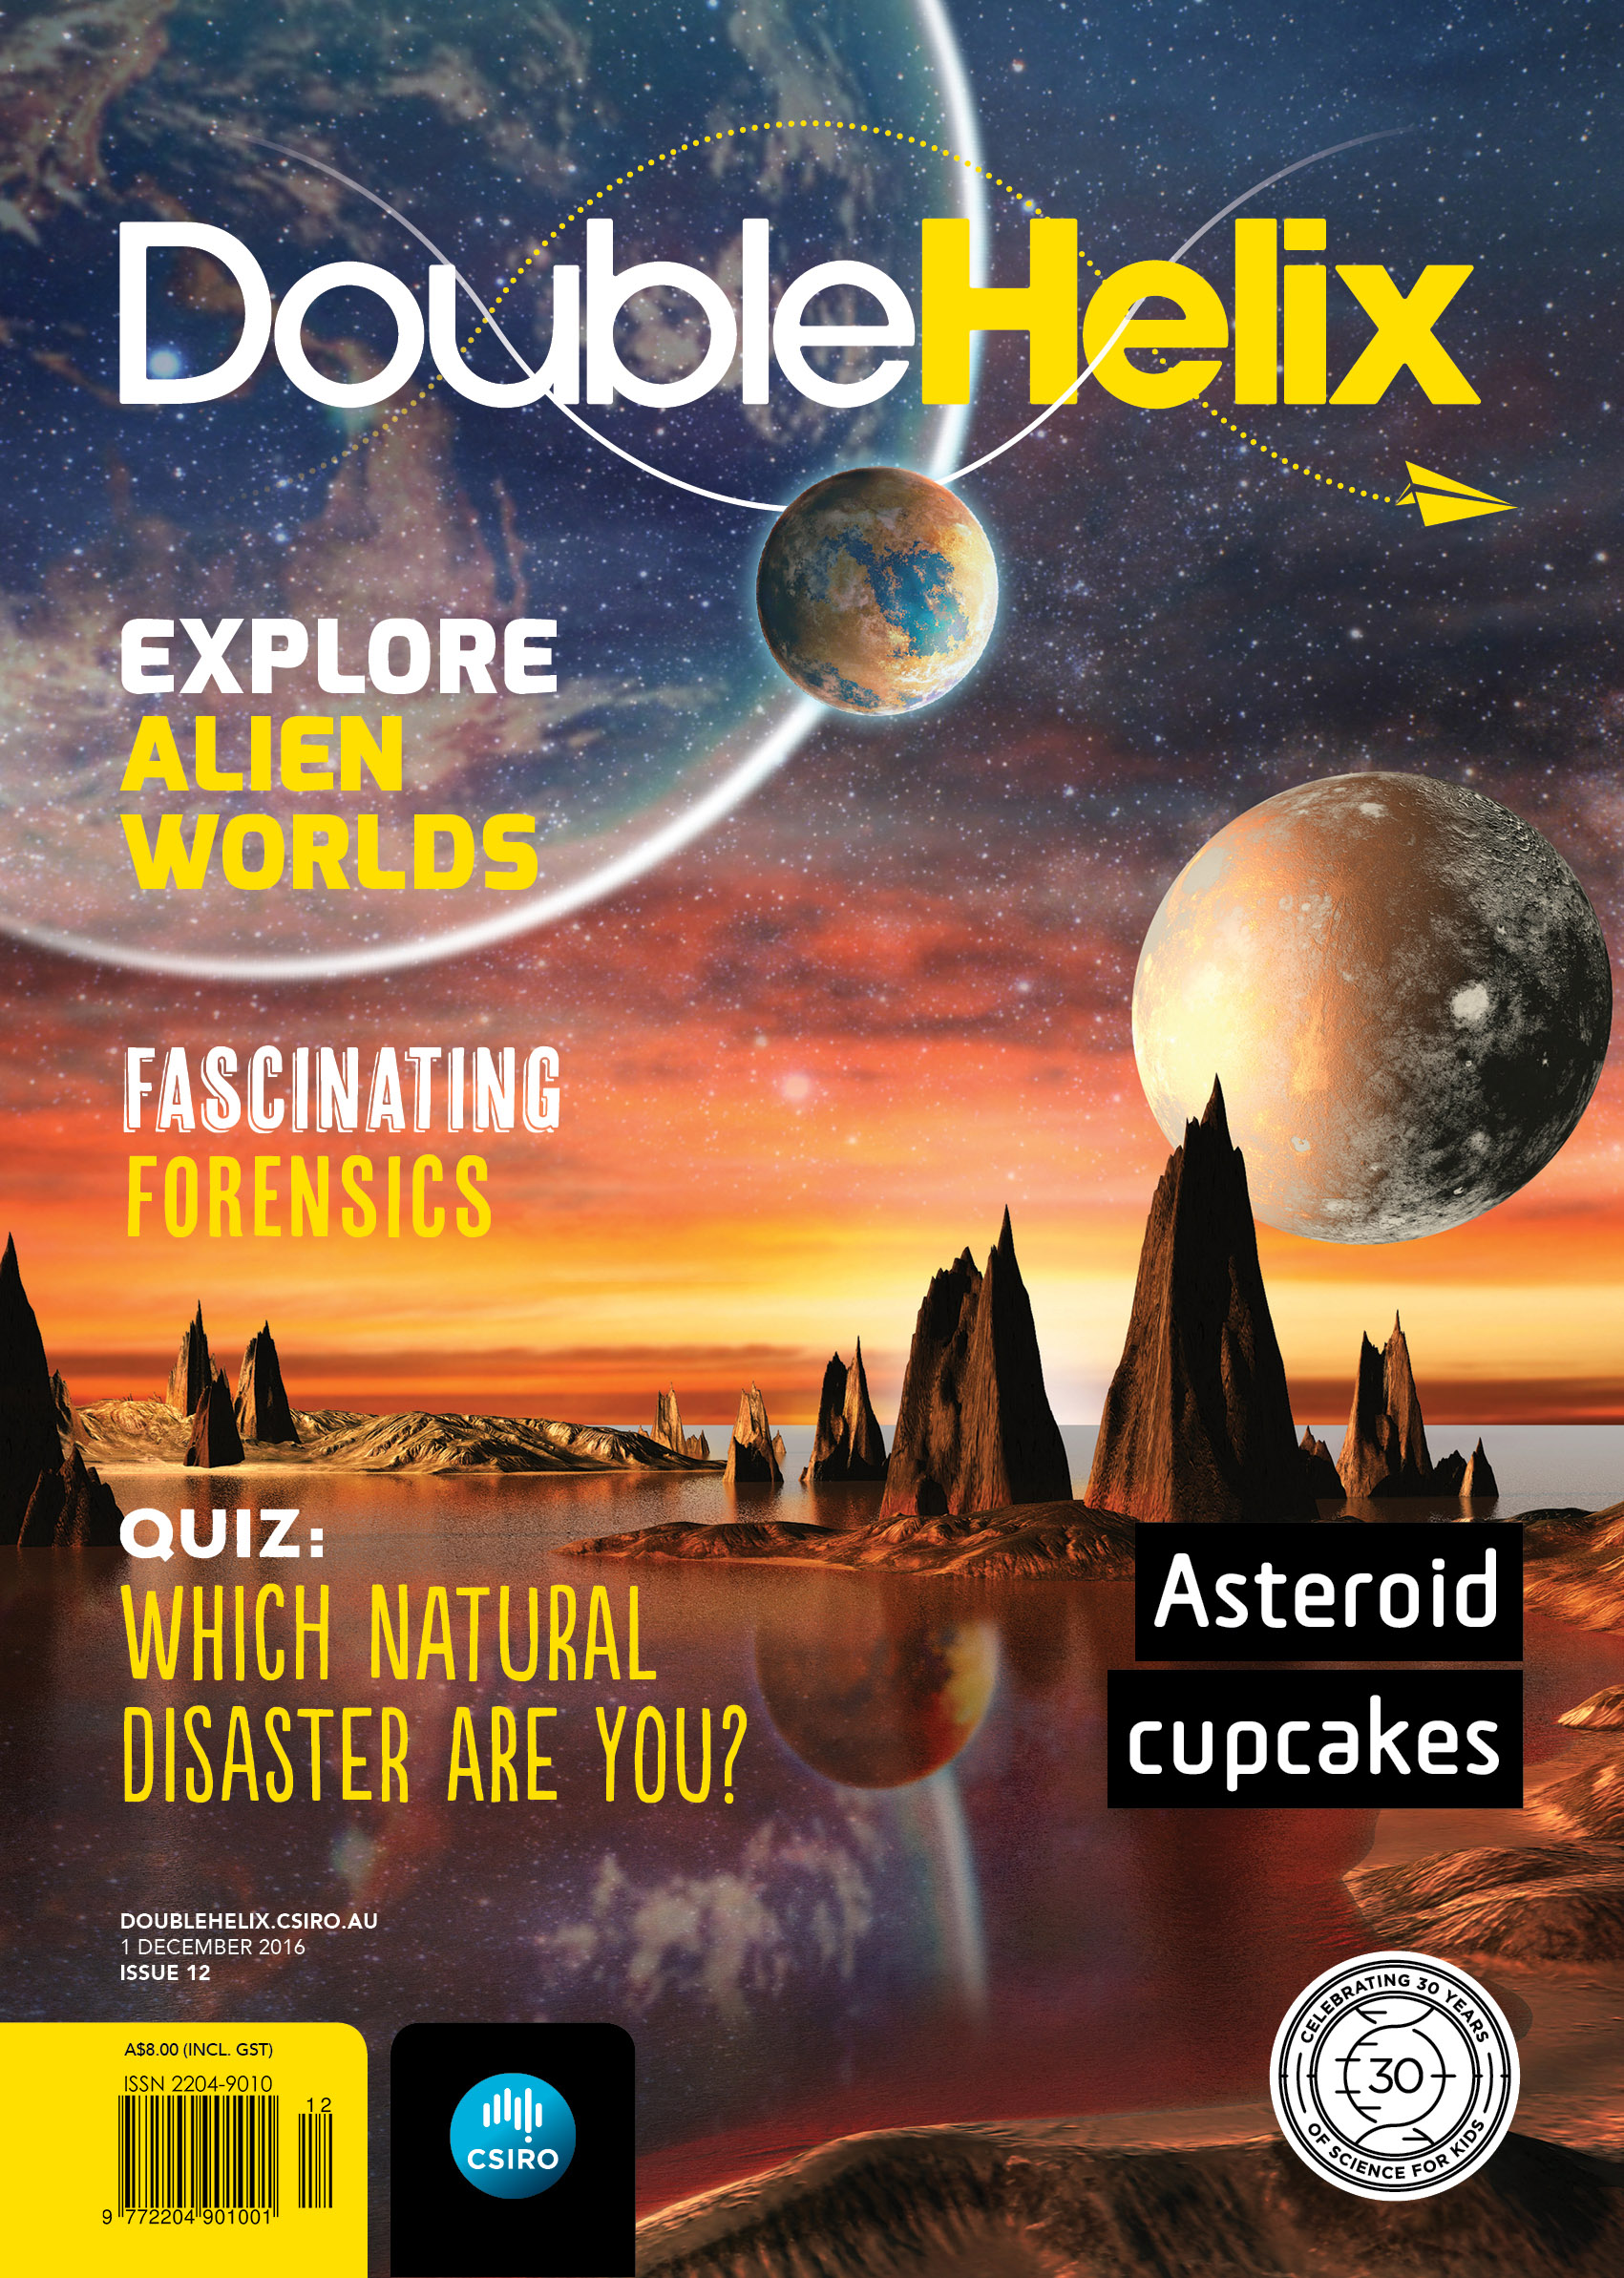 Cover with alien worlds landscape, a lake and planets in the distance